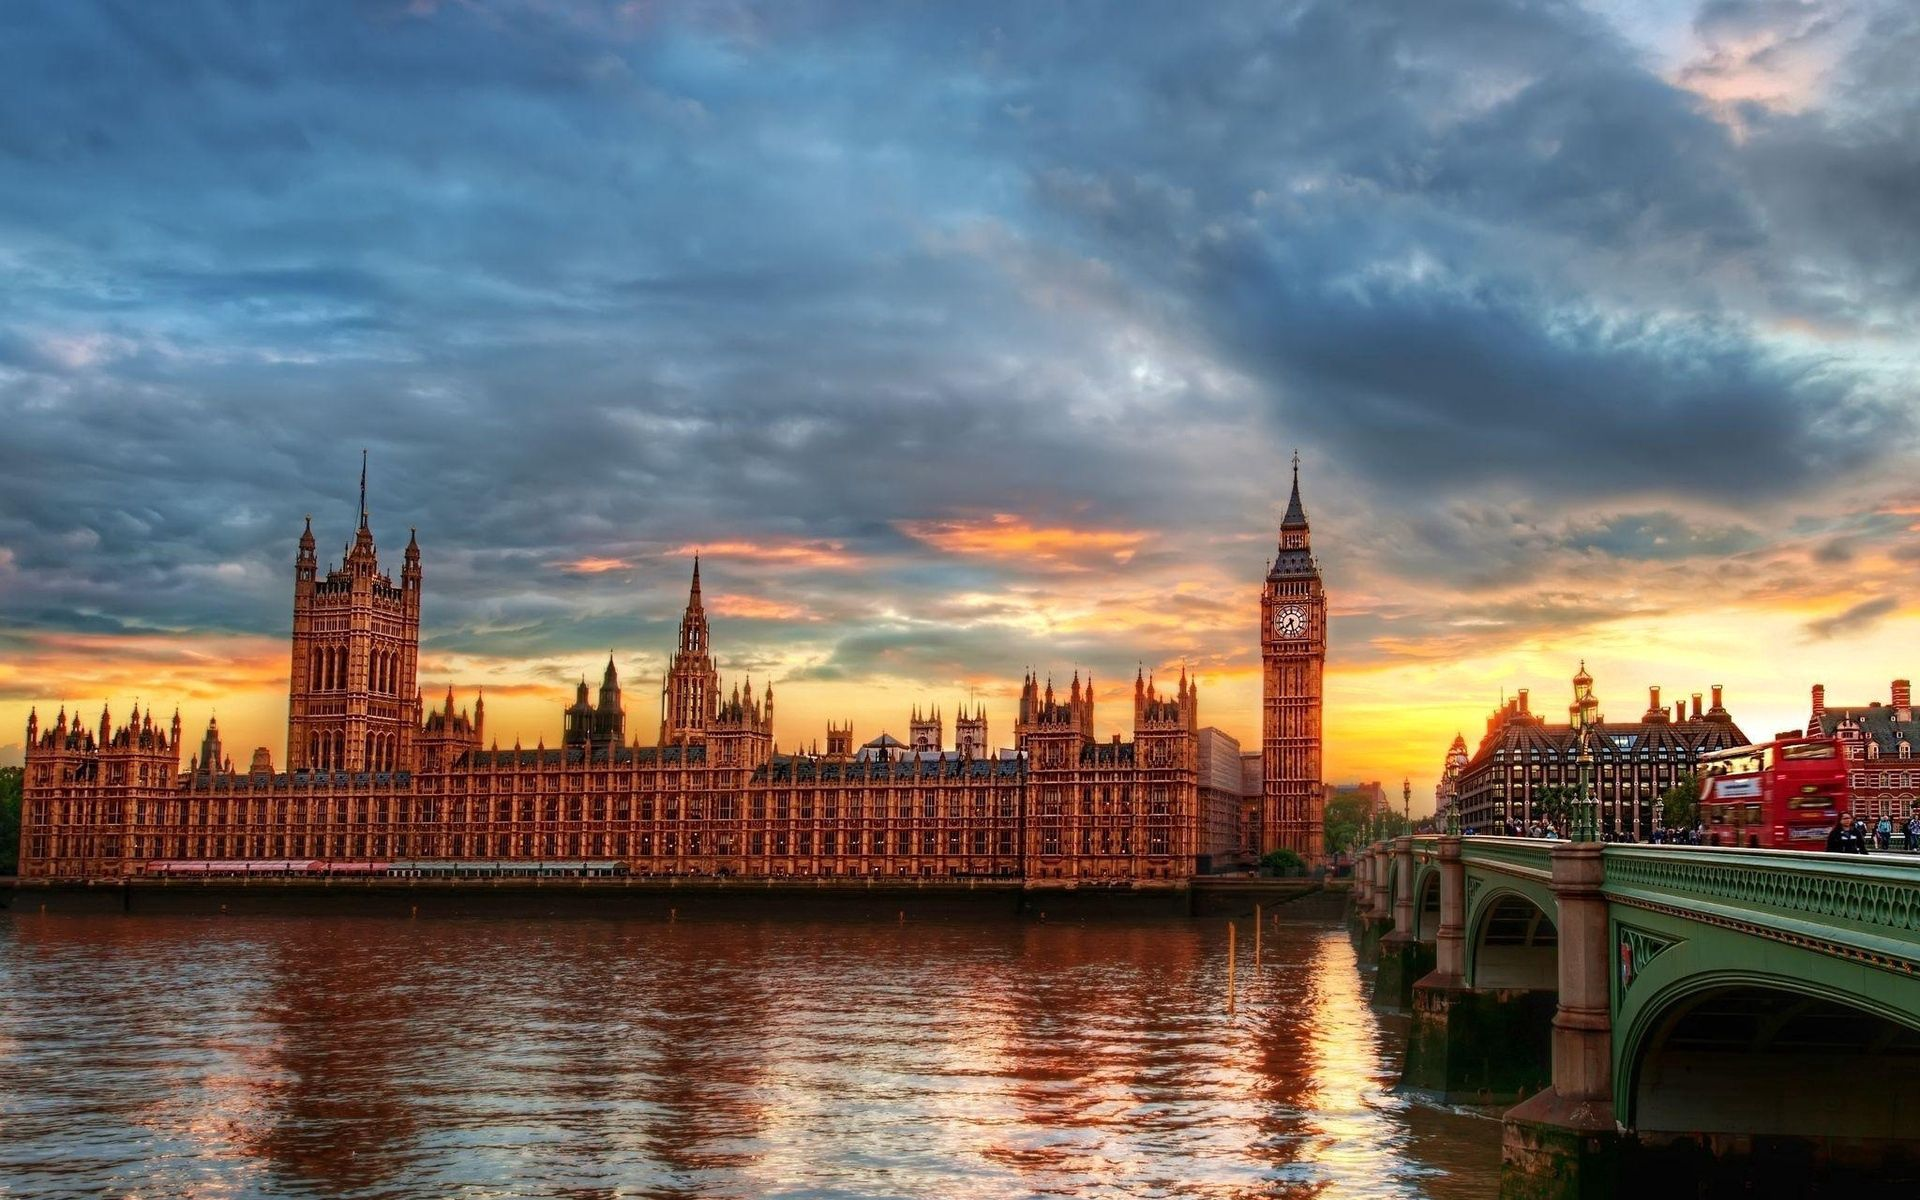 91404 download wallpaper Big Ben, Thames, City, Palace Of Westminster, London, Rivers, Hdr, Cities screensavers and pictures for free